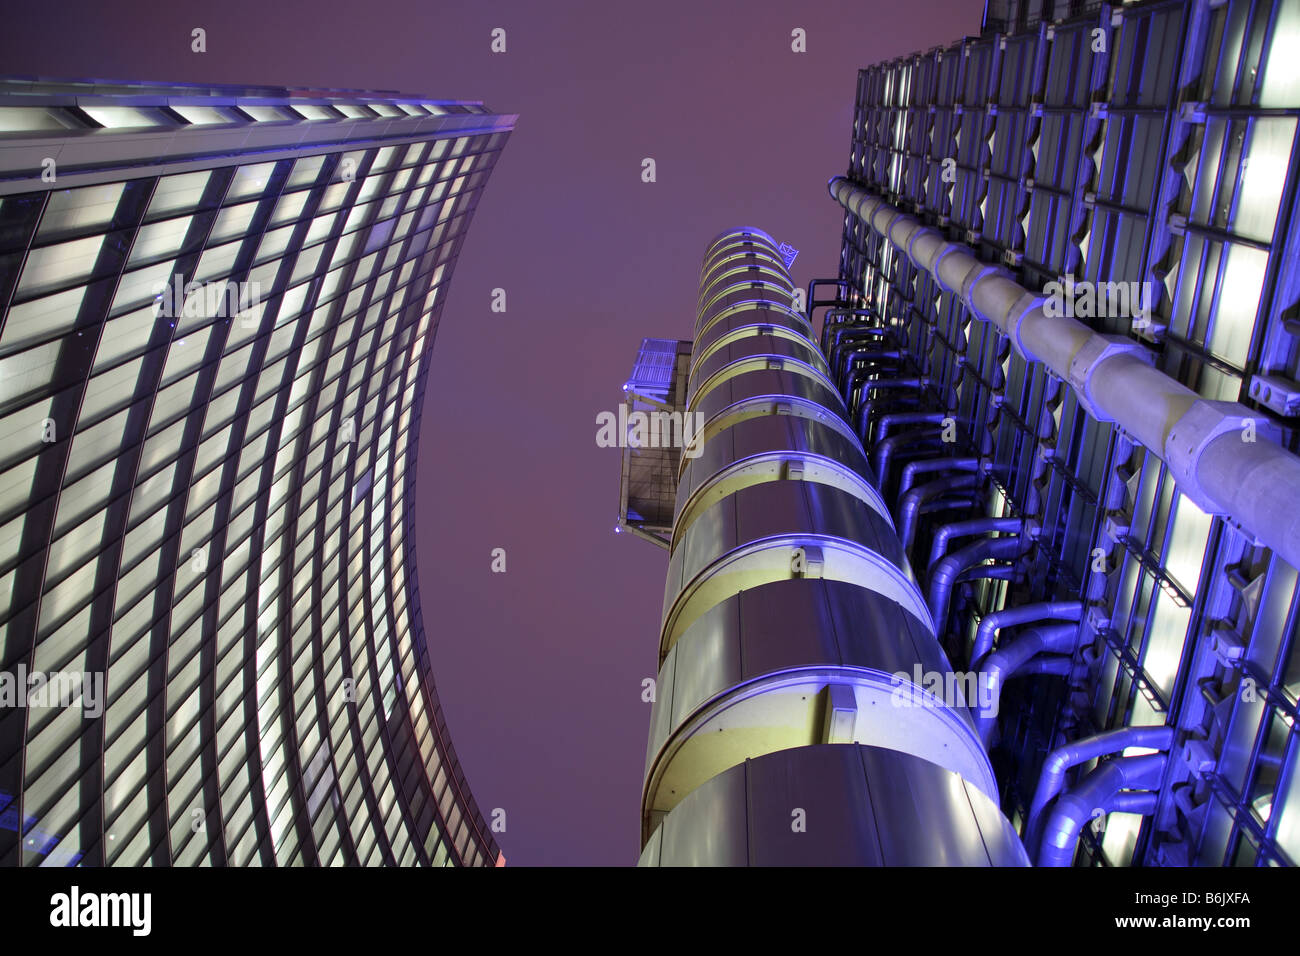 Royaume-uni, Angleterre, Londres. Le Lloyd's Building dans le centre de Londres. Photo Stock